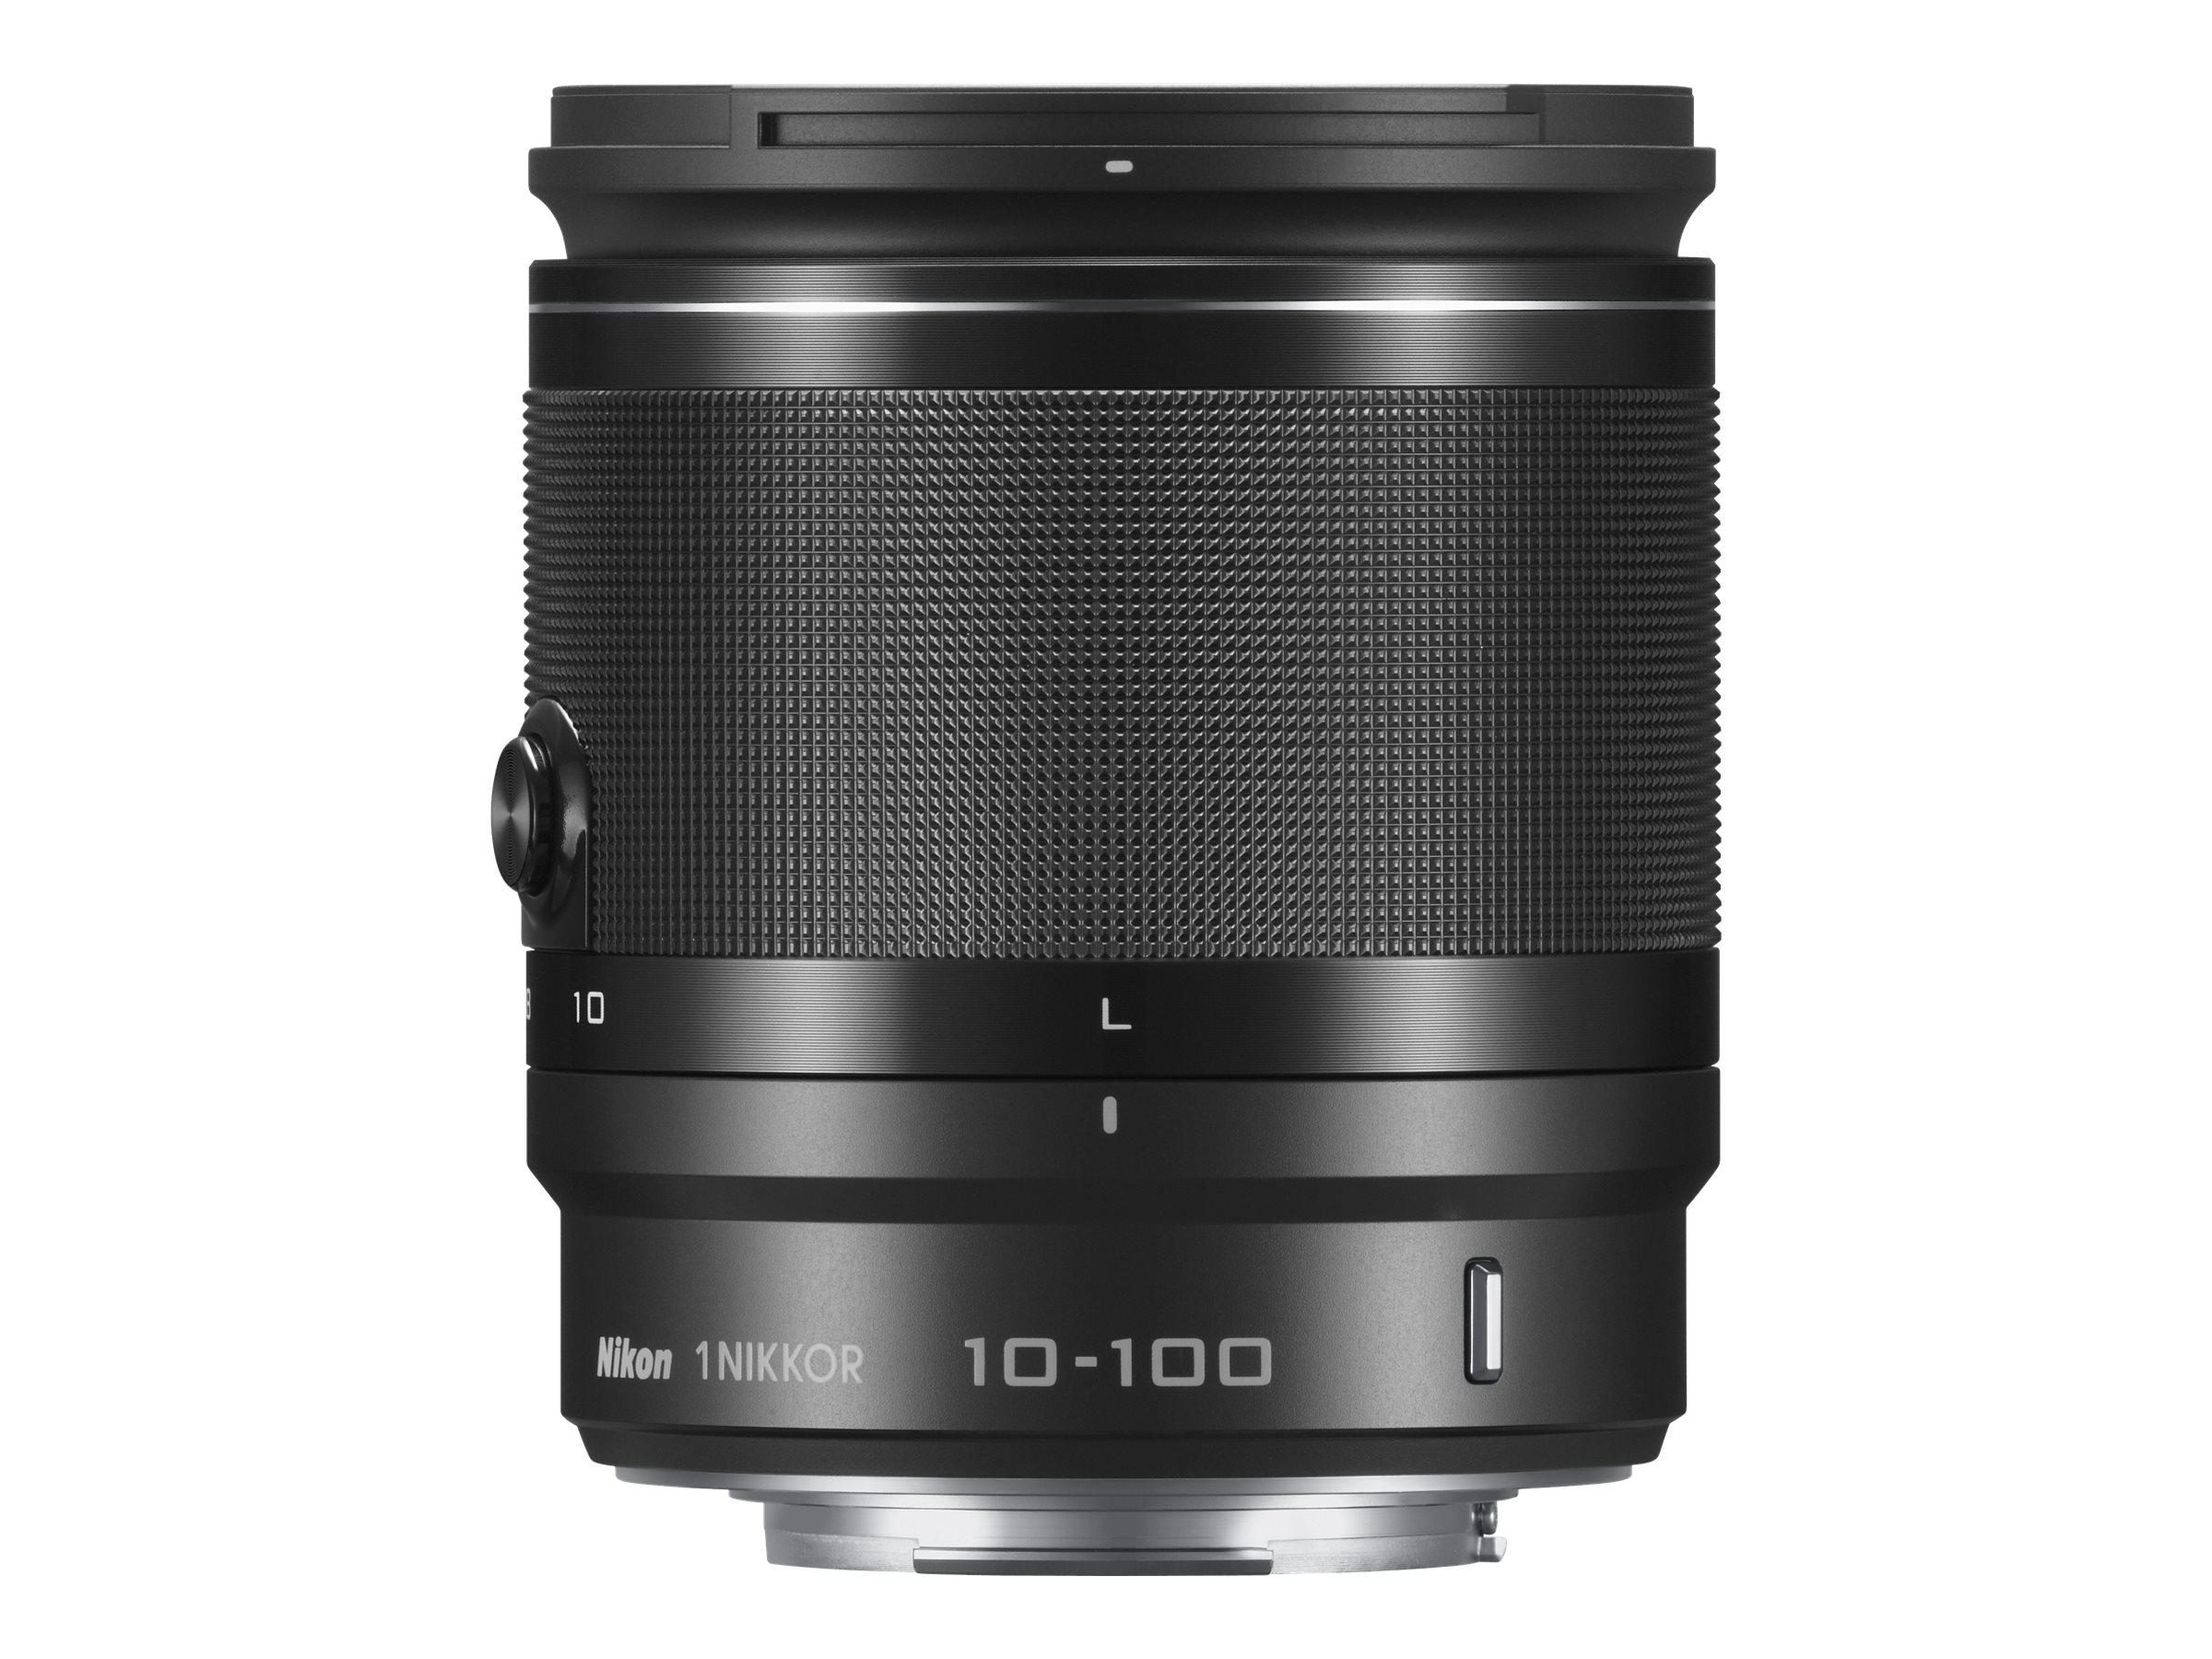 Nikon Nikkor 10-100mm f 4.0-5.6 VR Lens, Black, 3326, 15256711, Camera & Camcorder Lenses & Filters